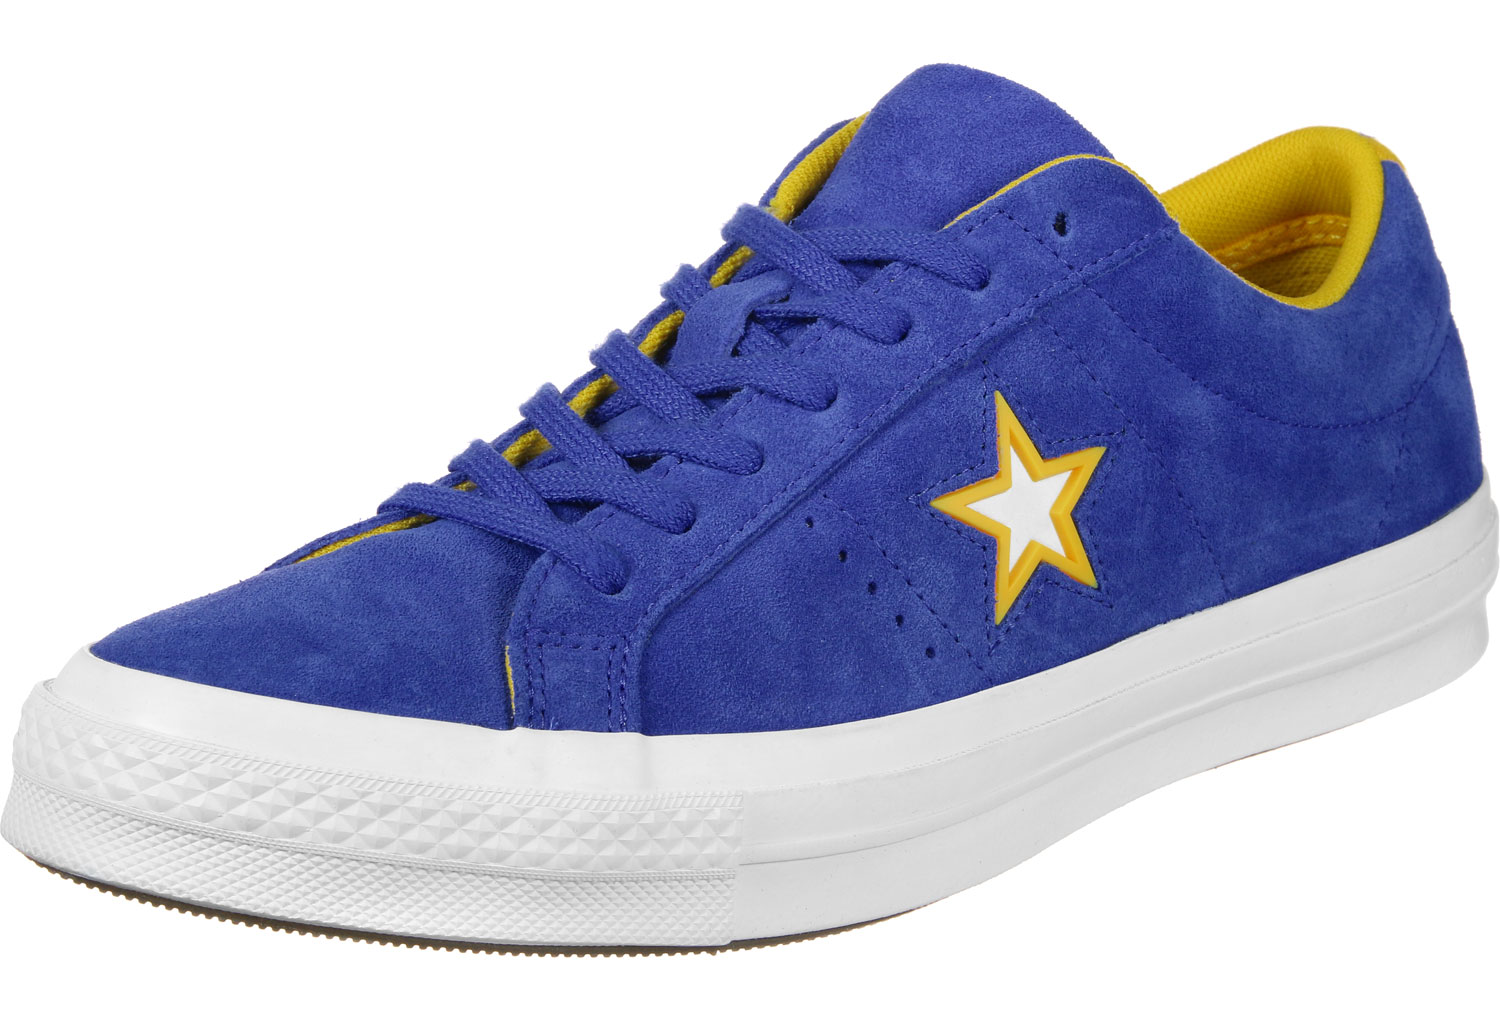 Converse One Star Ox - Sneakers Low at